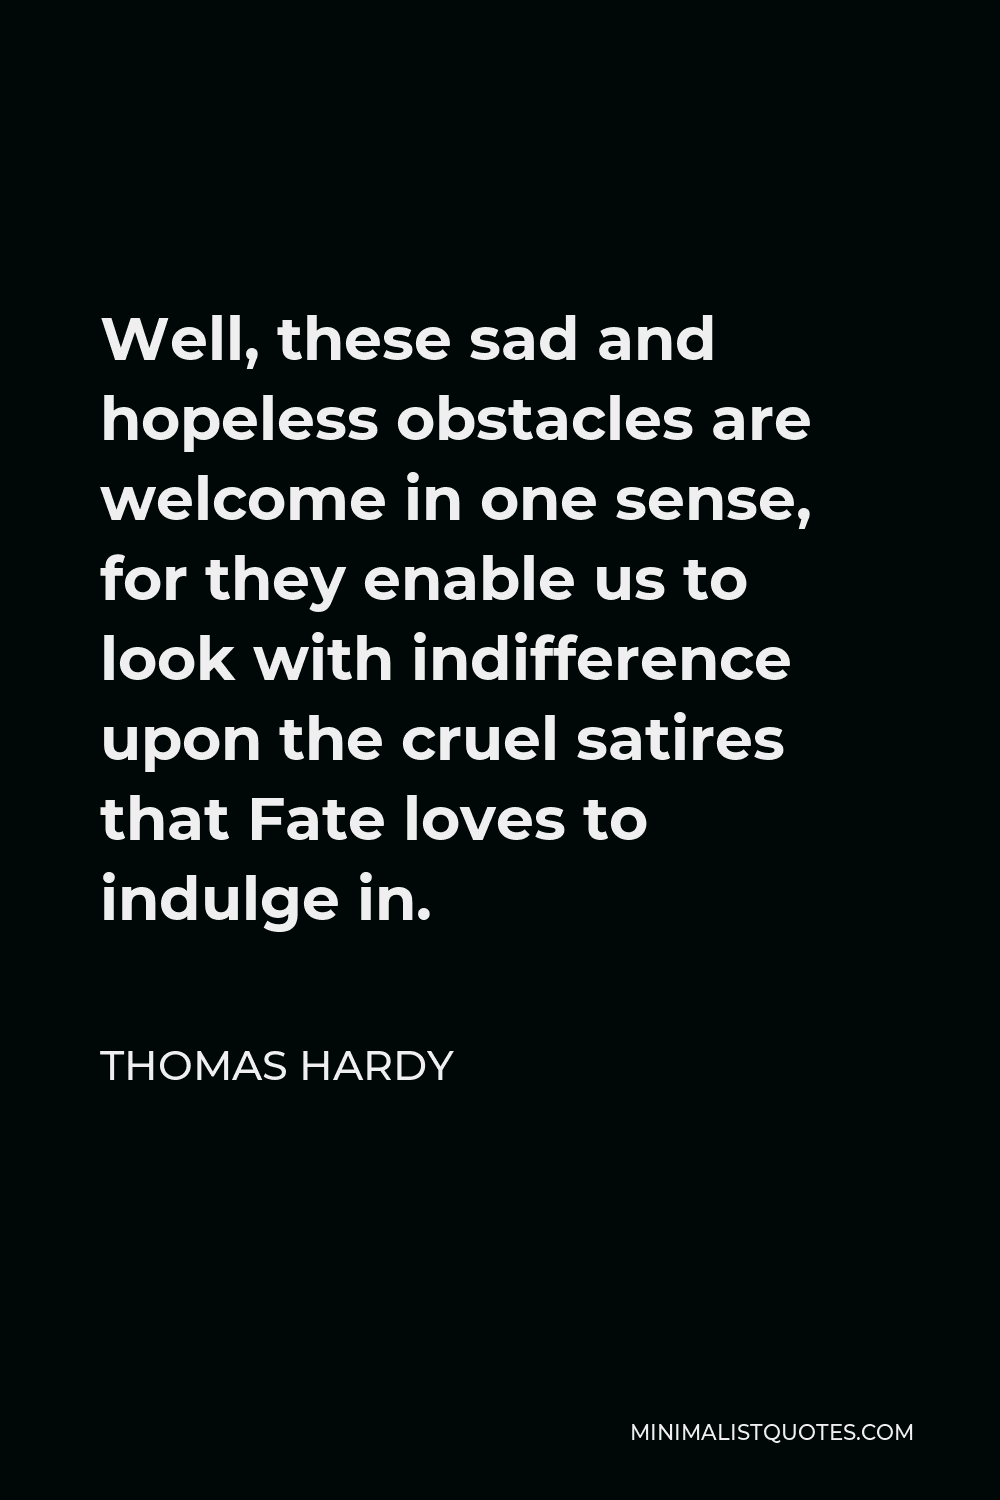 Thomas Hardy Quote - Well, these sad and hopeless obstacles are welcome in one sense, for they enable us to look with indifference upon the cruel satires that Fate loves to indulge in.